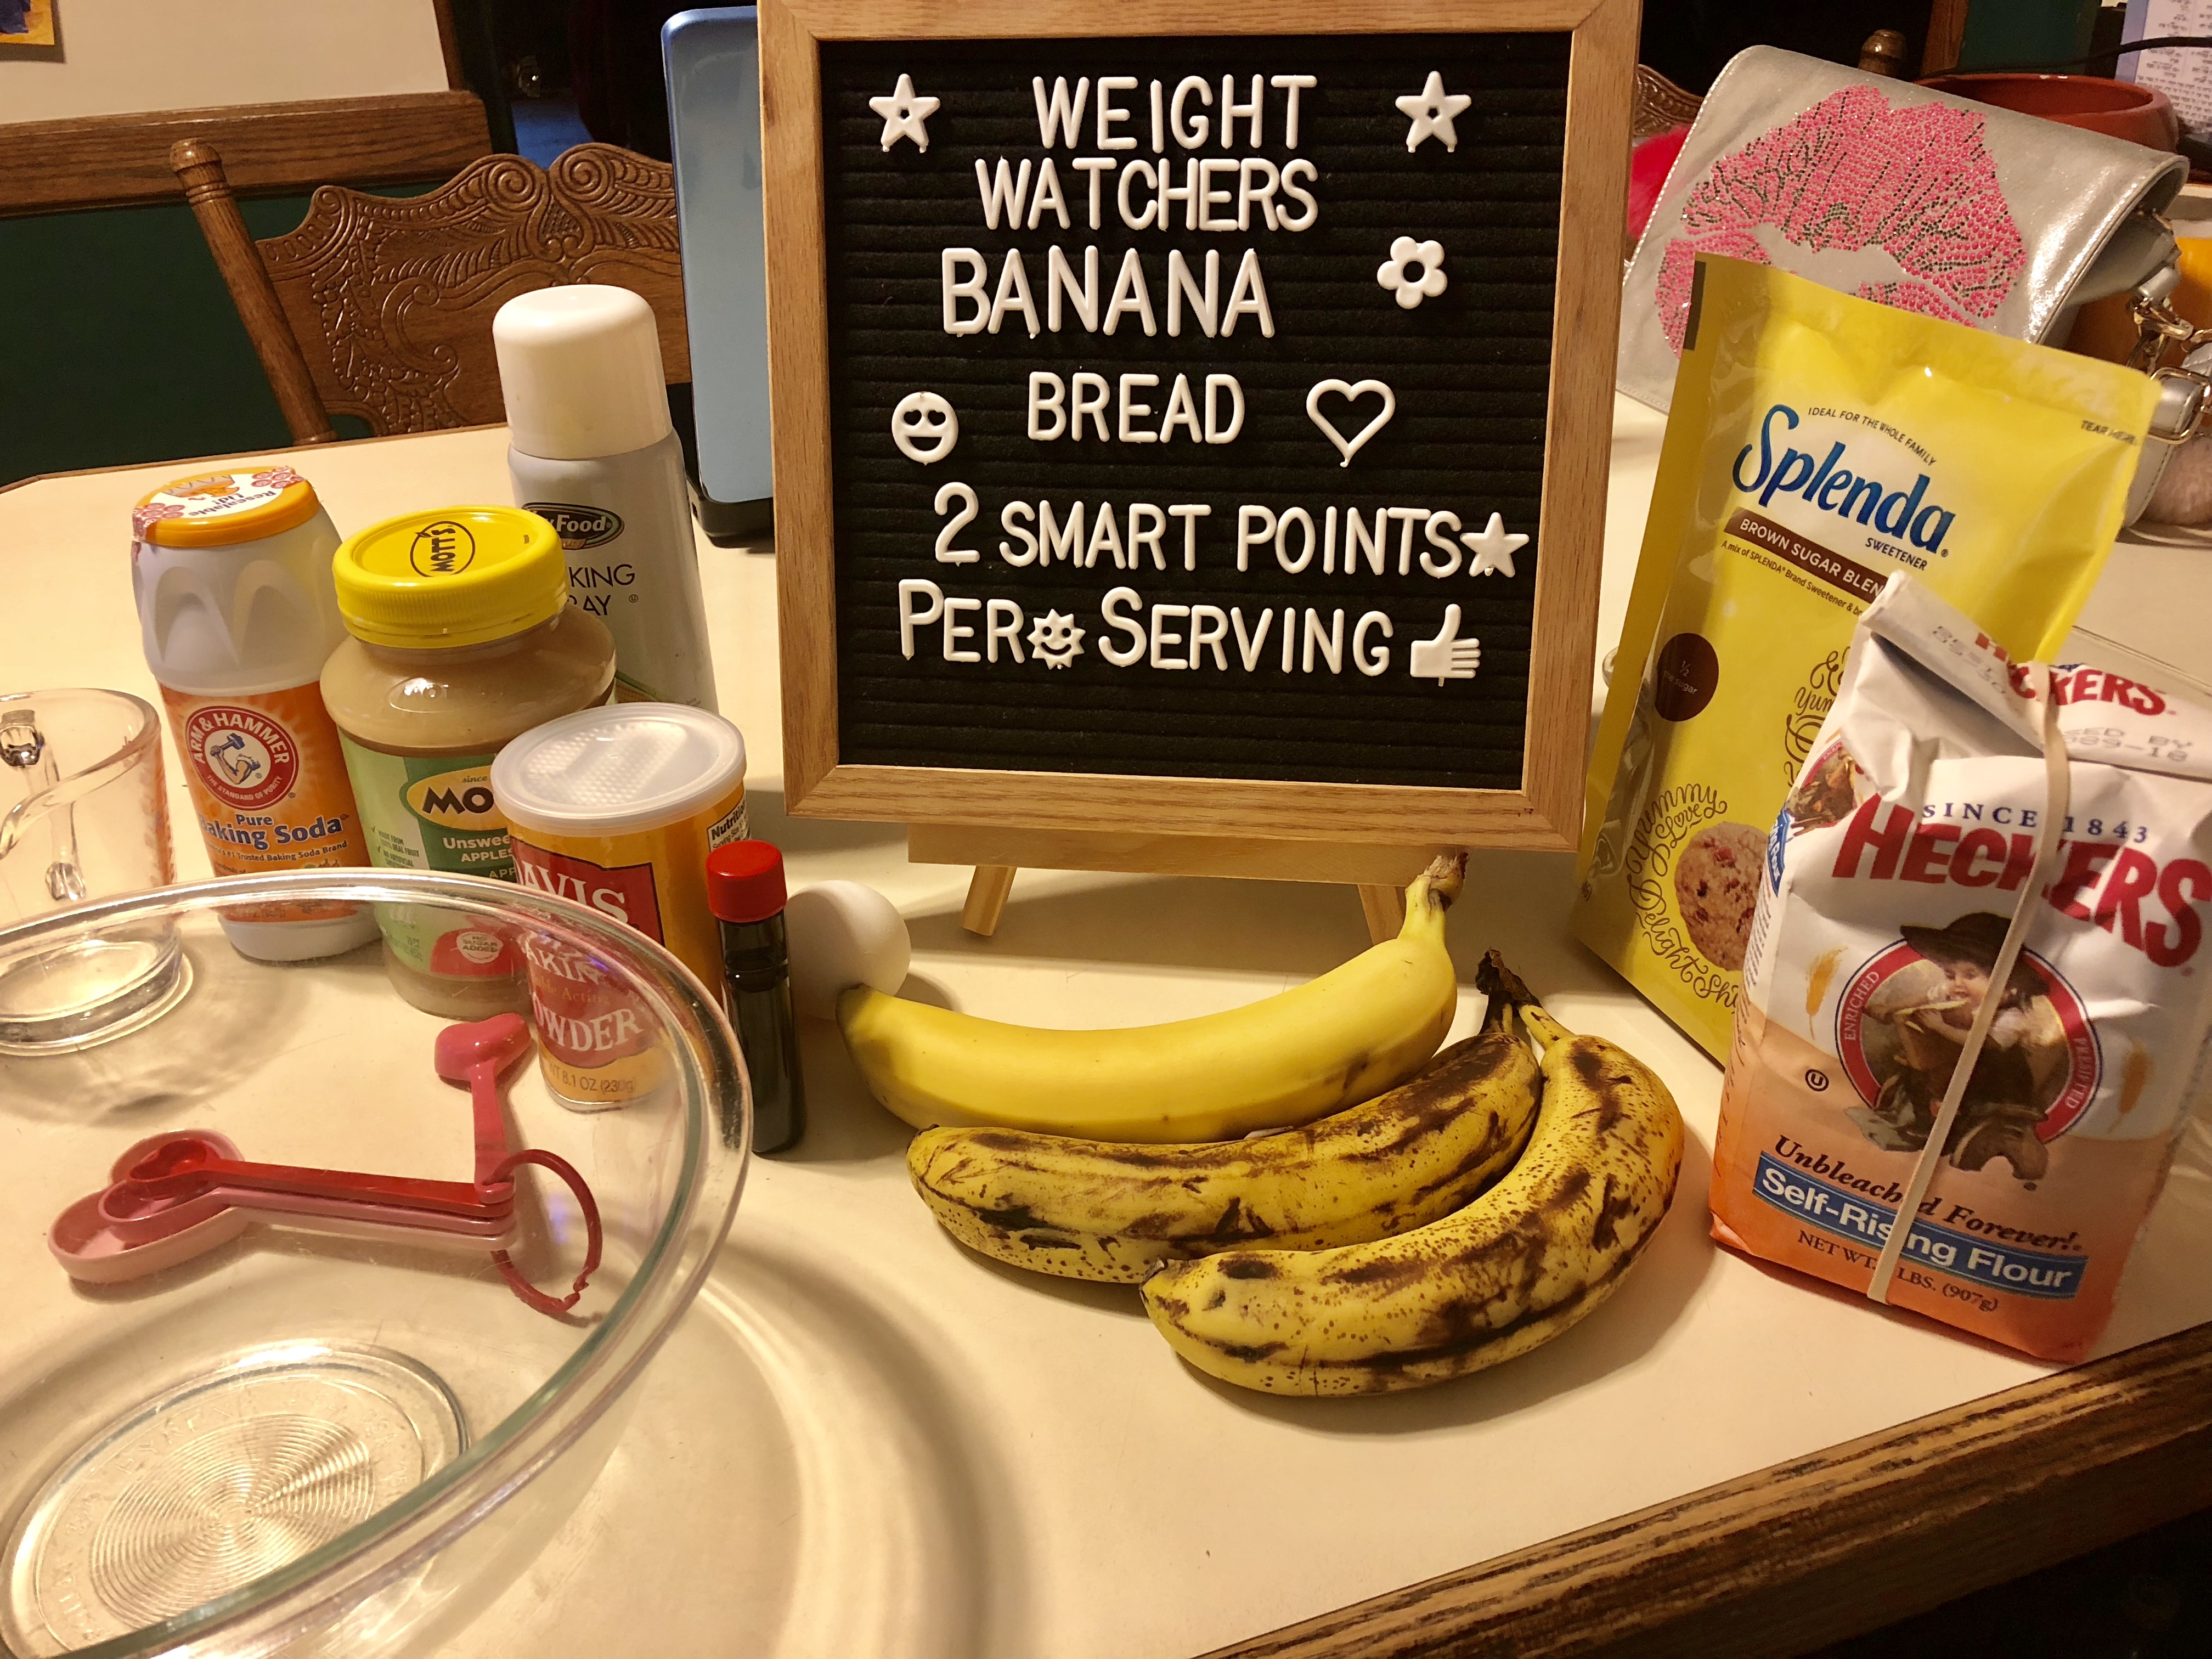 Weight Watchers Banana Bread Recipe just 2 points per serving